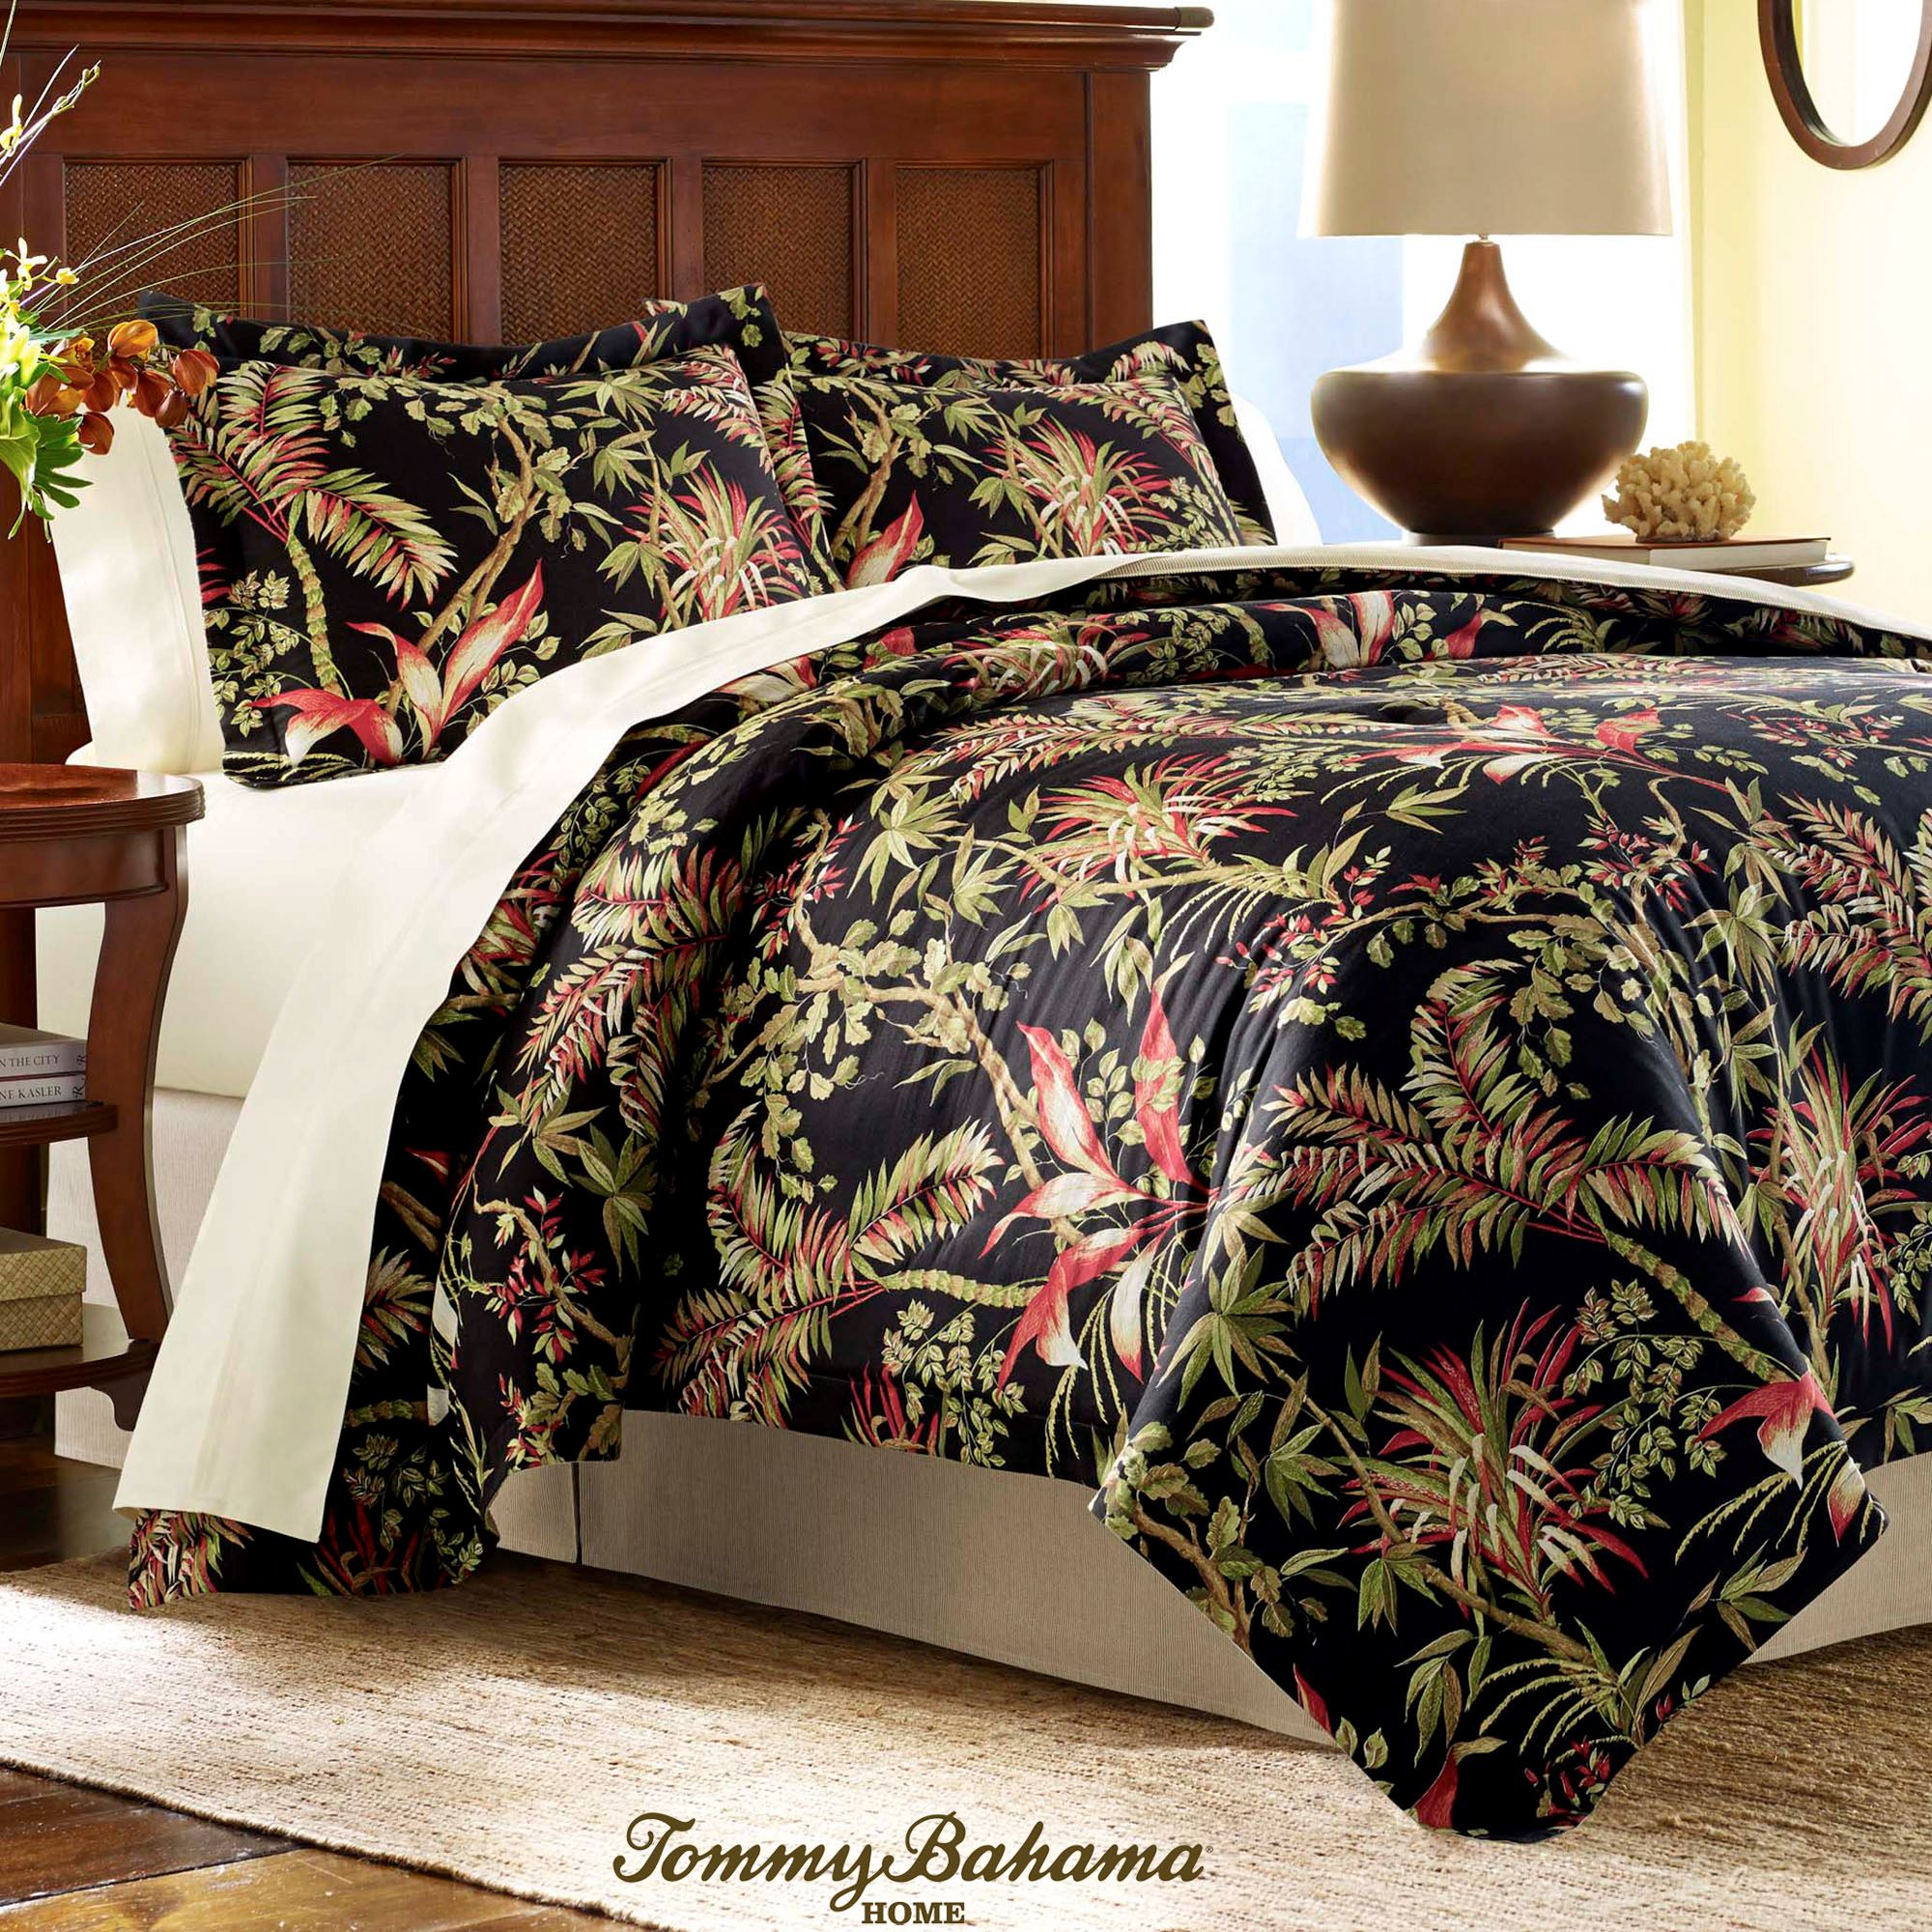 Jungle Drive Black Tropical Duvet Cover Set by Tommy Bahama